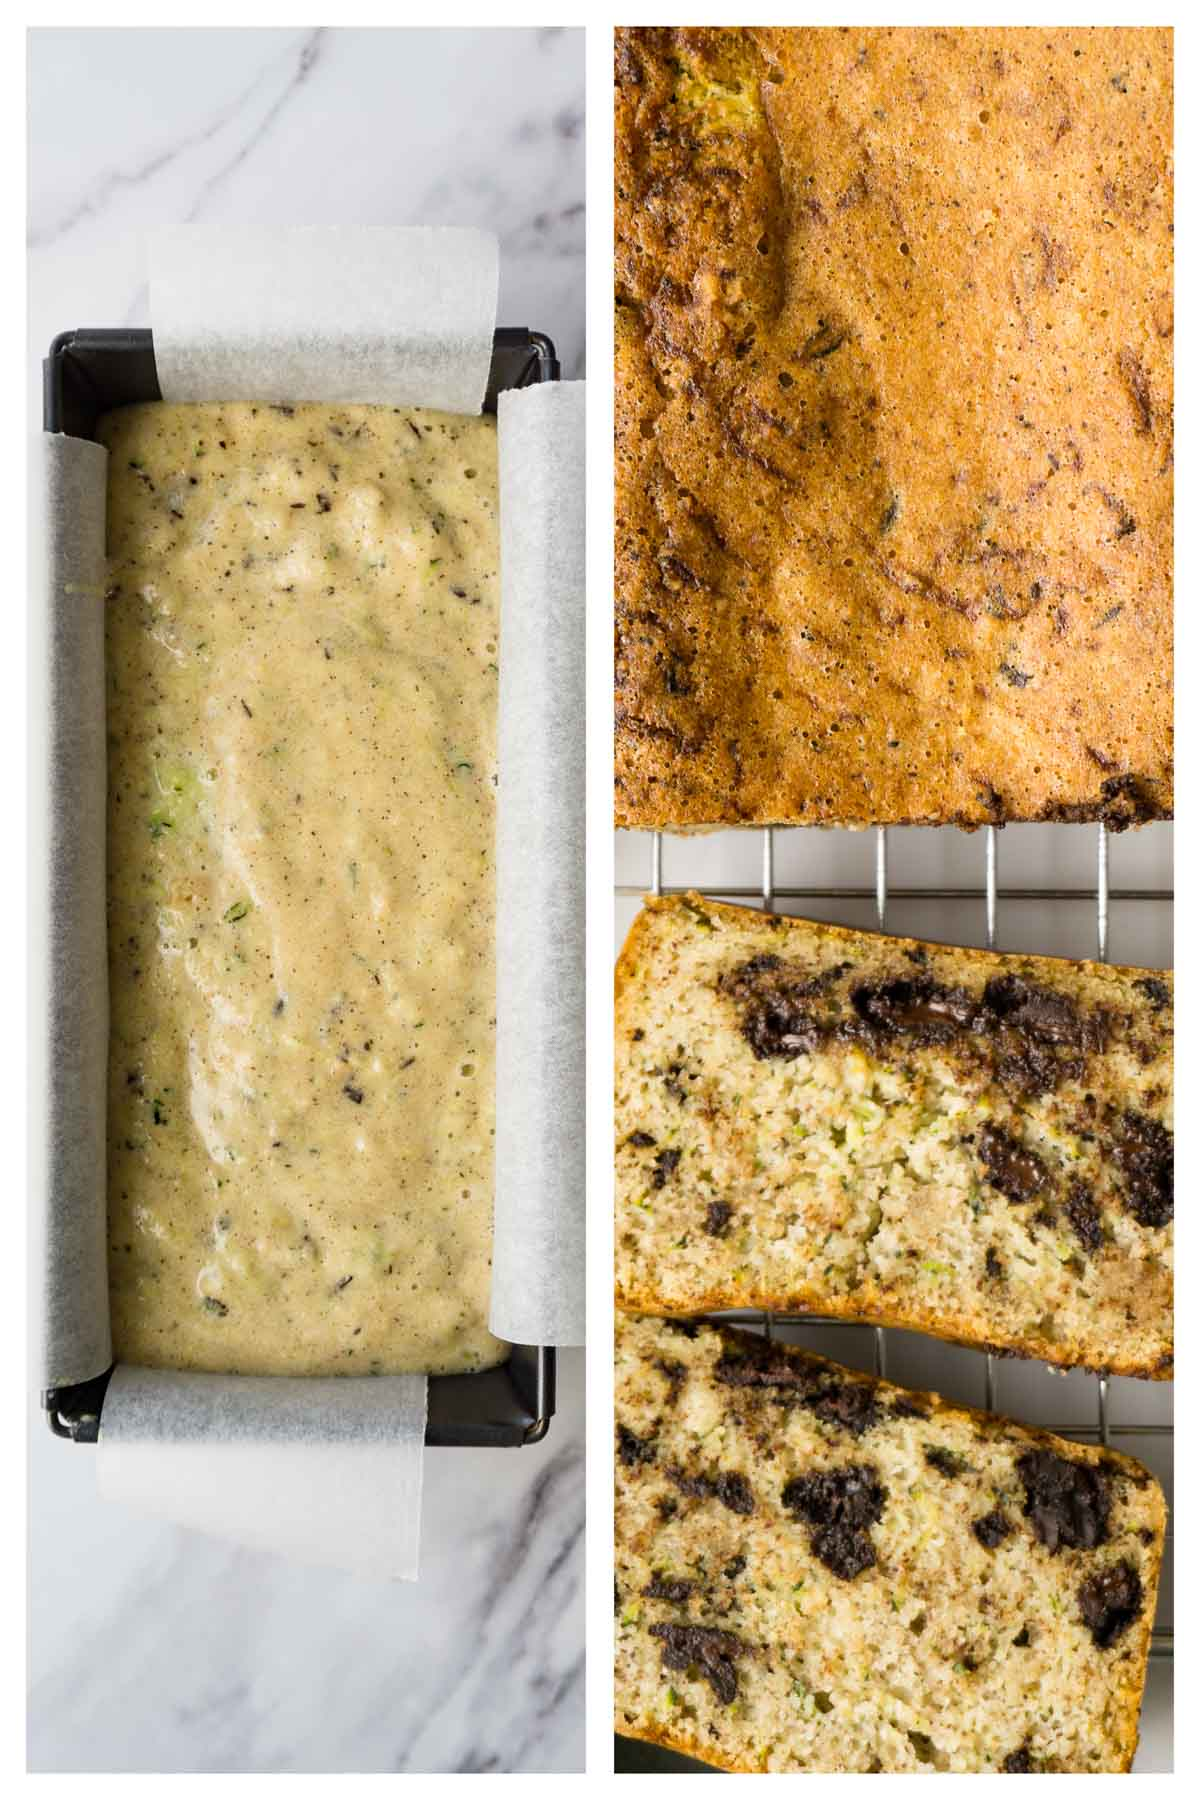 A loaf pan filled with gluten-free zucchini bread batter on the left side, and freshly baked and partially sliced loaf on the right side of the picture.